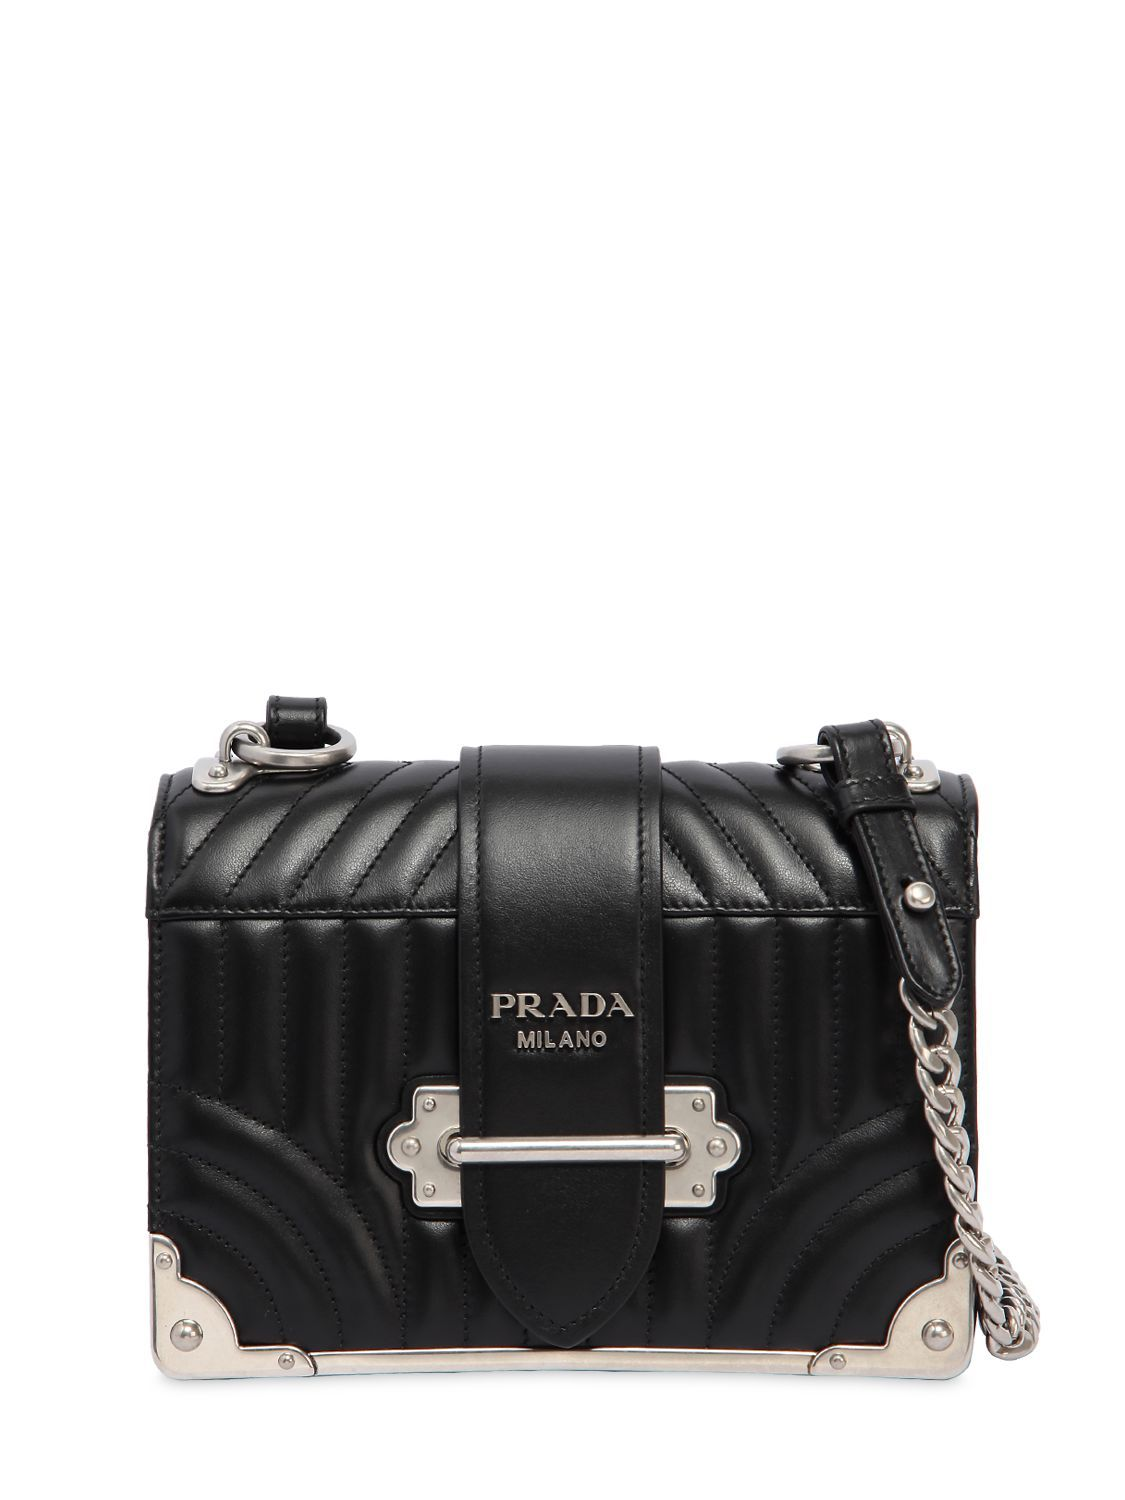 3c9826b95a PRADA CAHIER QUILTED SOFT LEATHER SHOULDER BAG.  prada  bags  shoulder bags   leather